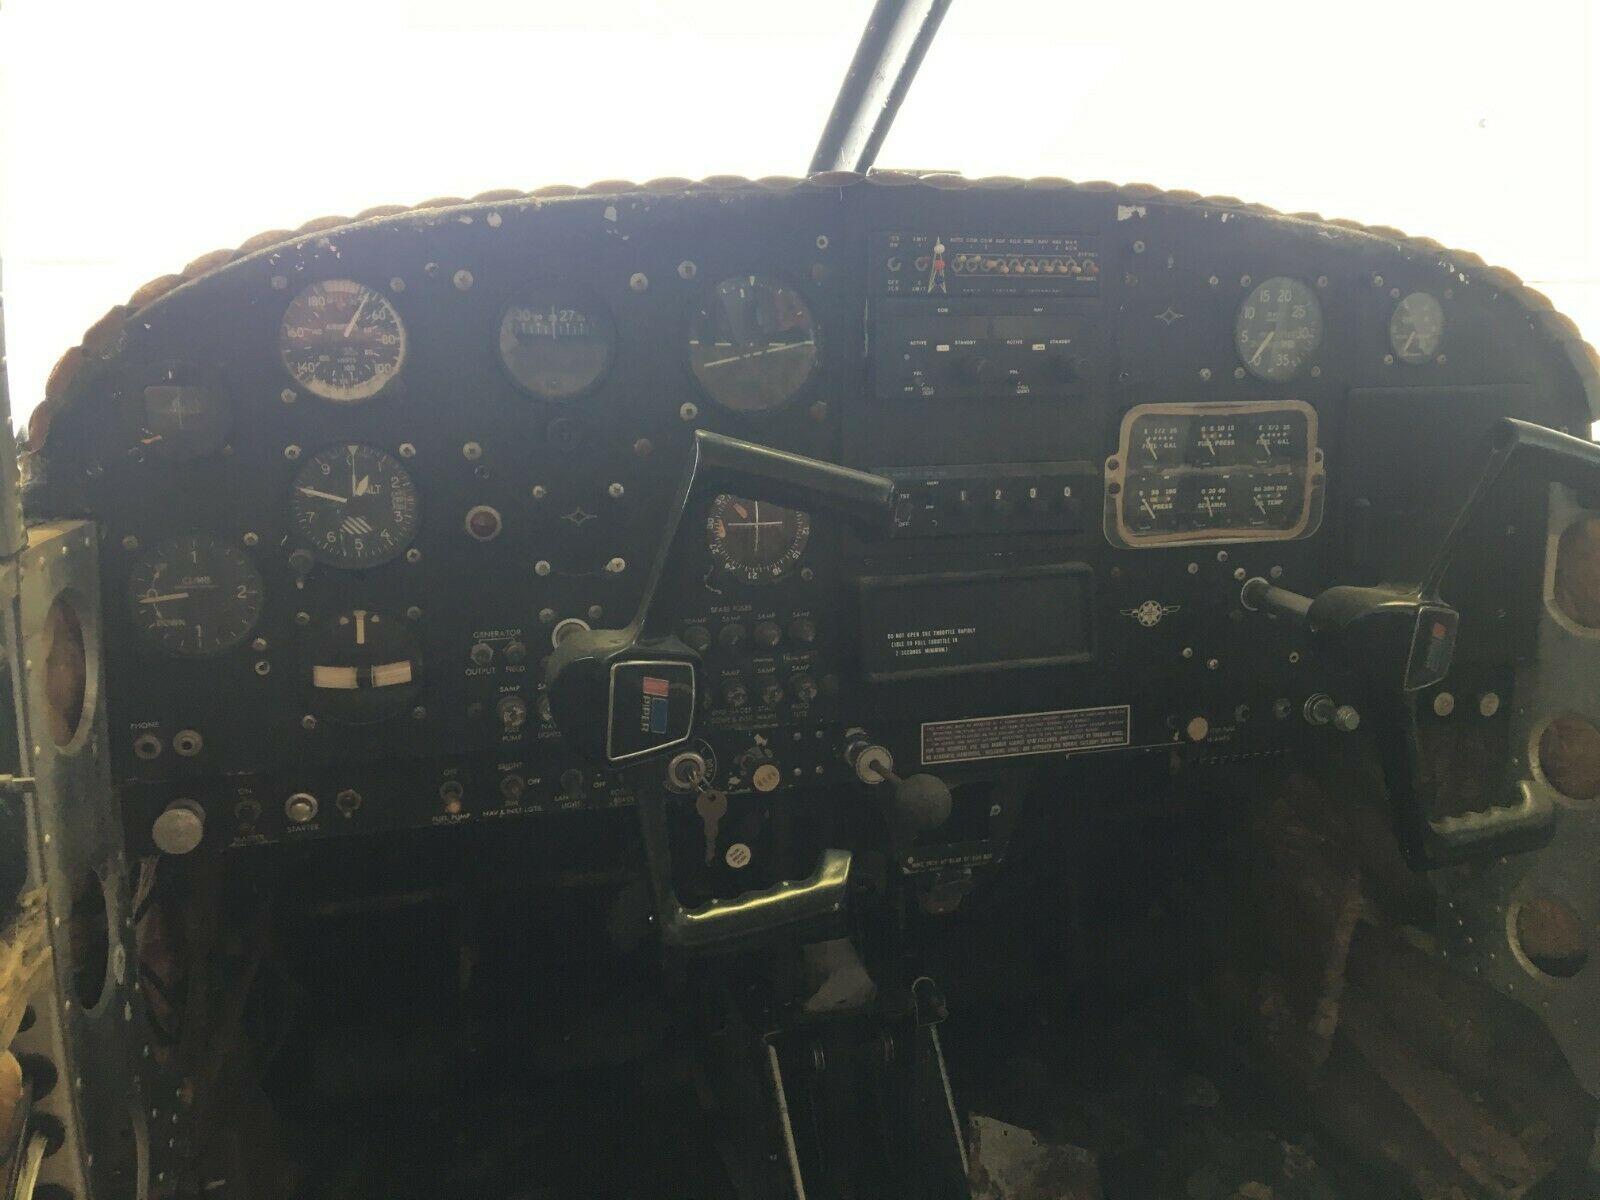 project 1964 Piper PA 28 aircraft